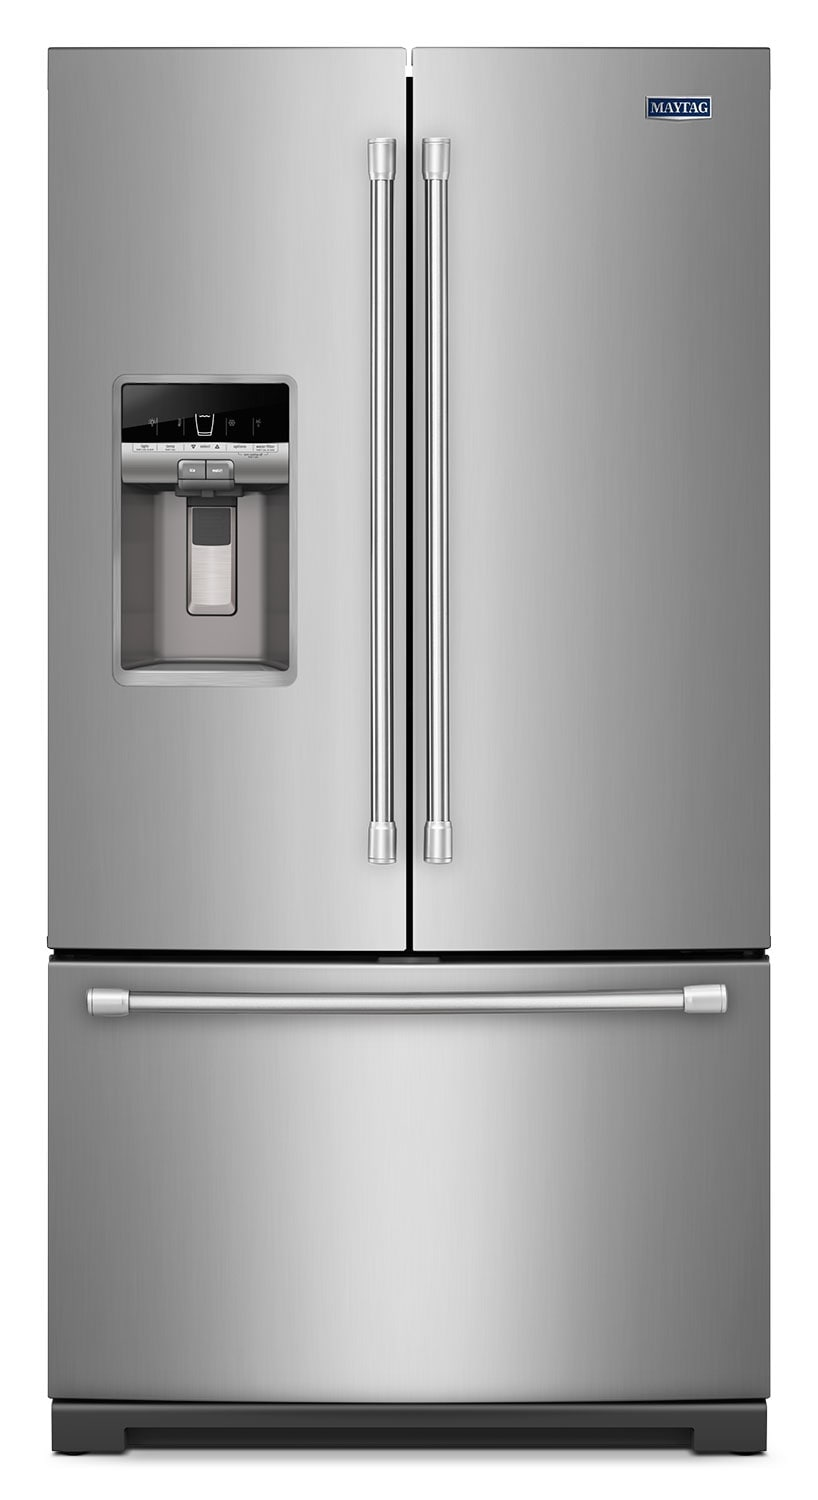 [Maytag Stainless Steel French Door Refrigerator (26.8 Cu. Ft.) - MFT2776DEM]